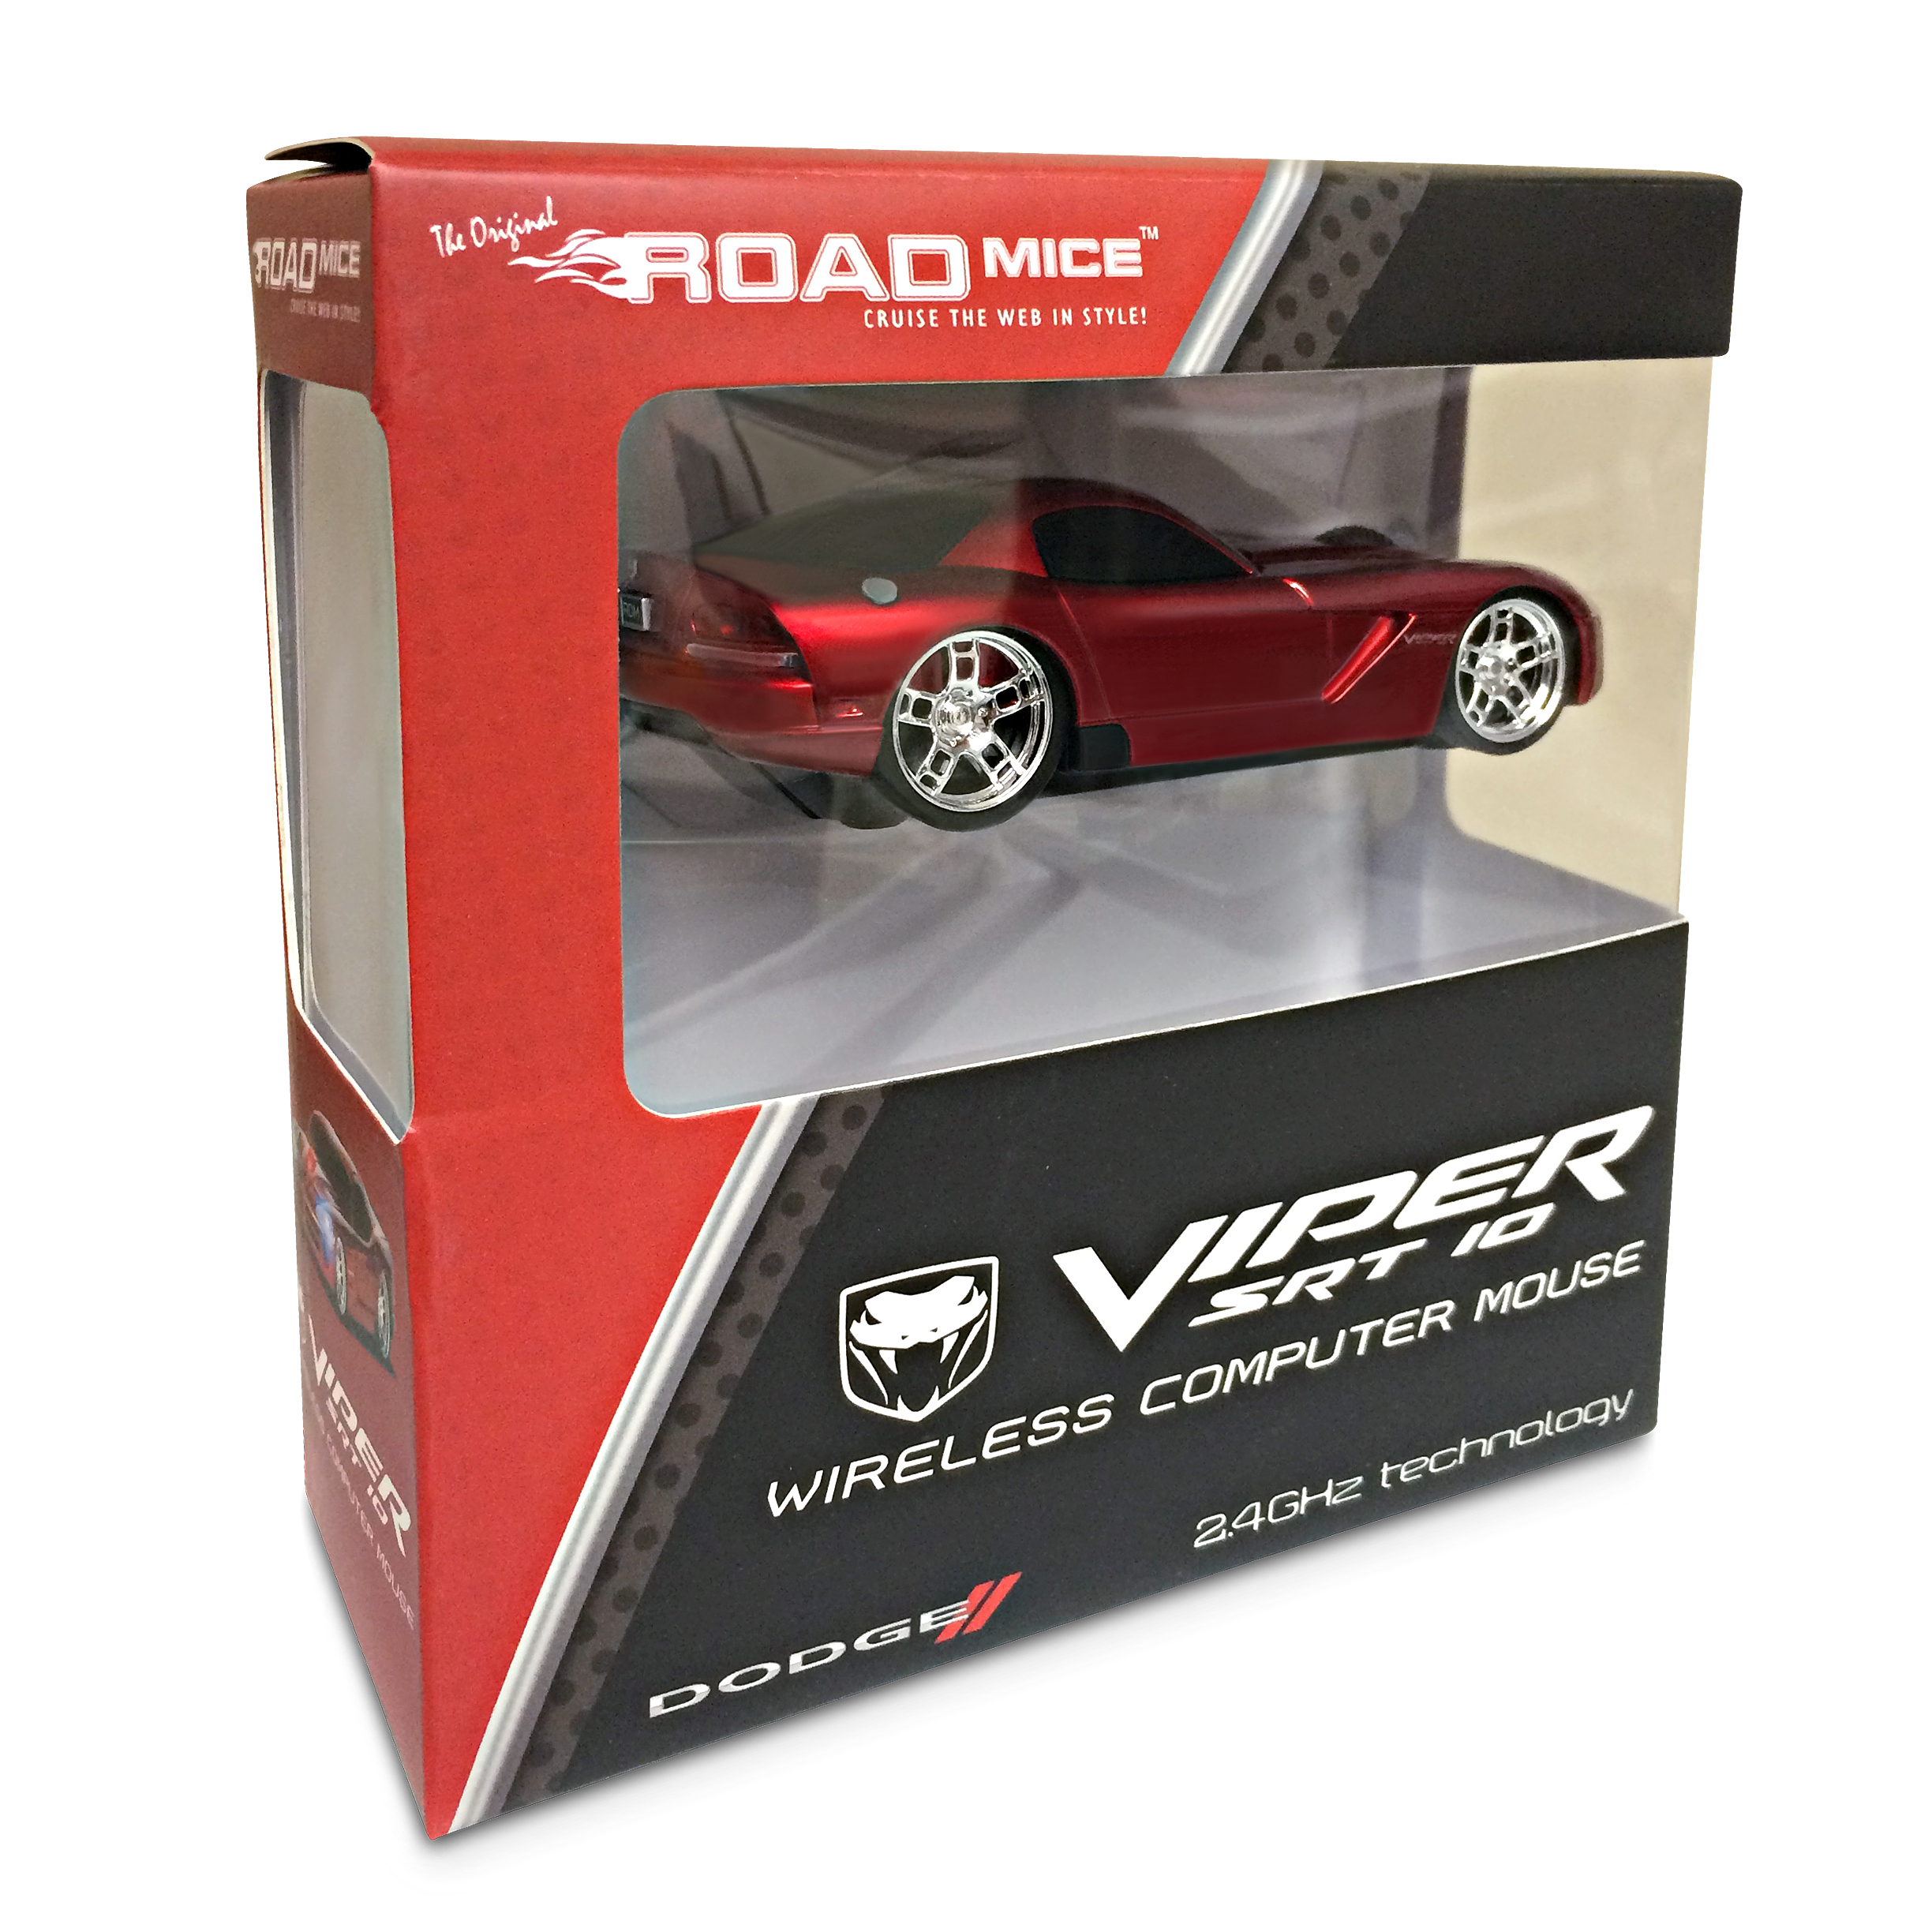 Road Mice Dodge Viper Car Wireless Computer Mouse - Red